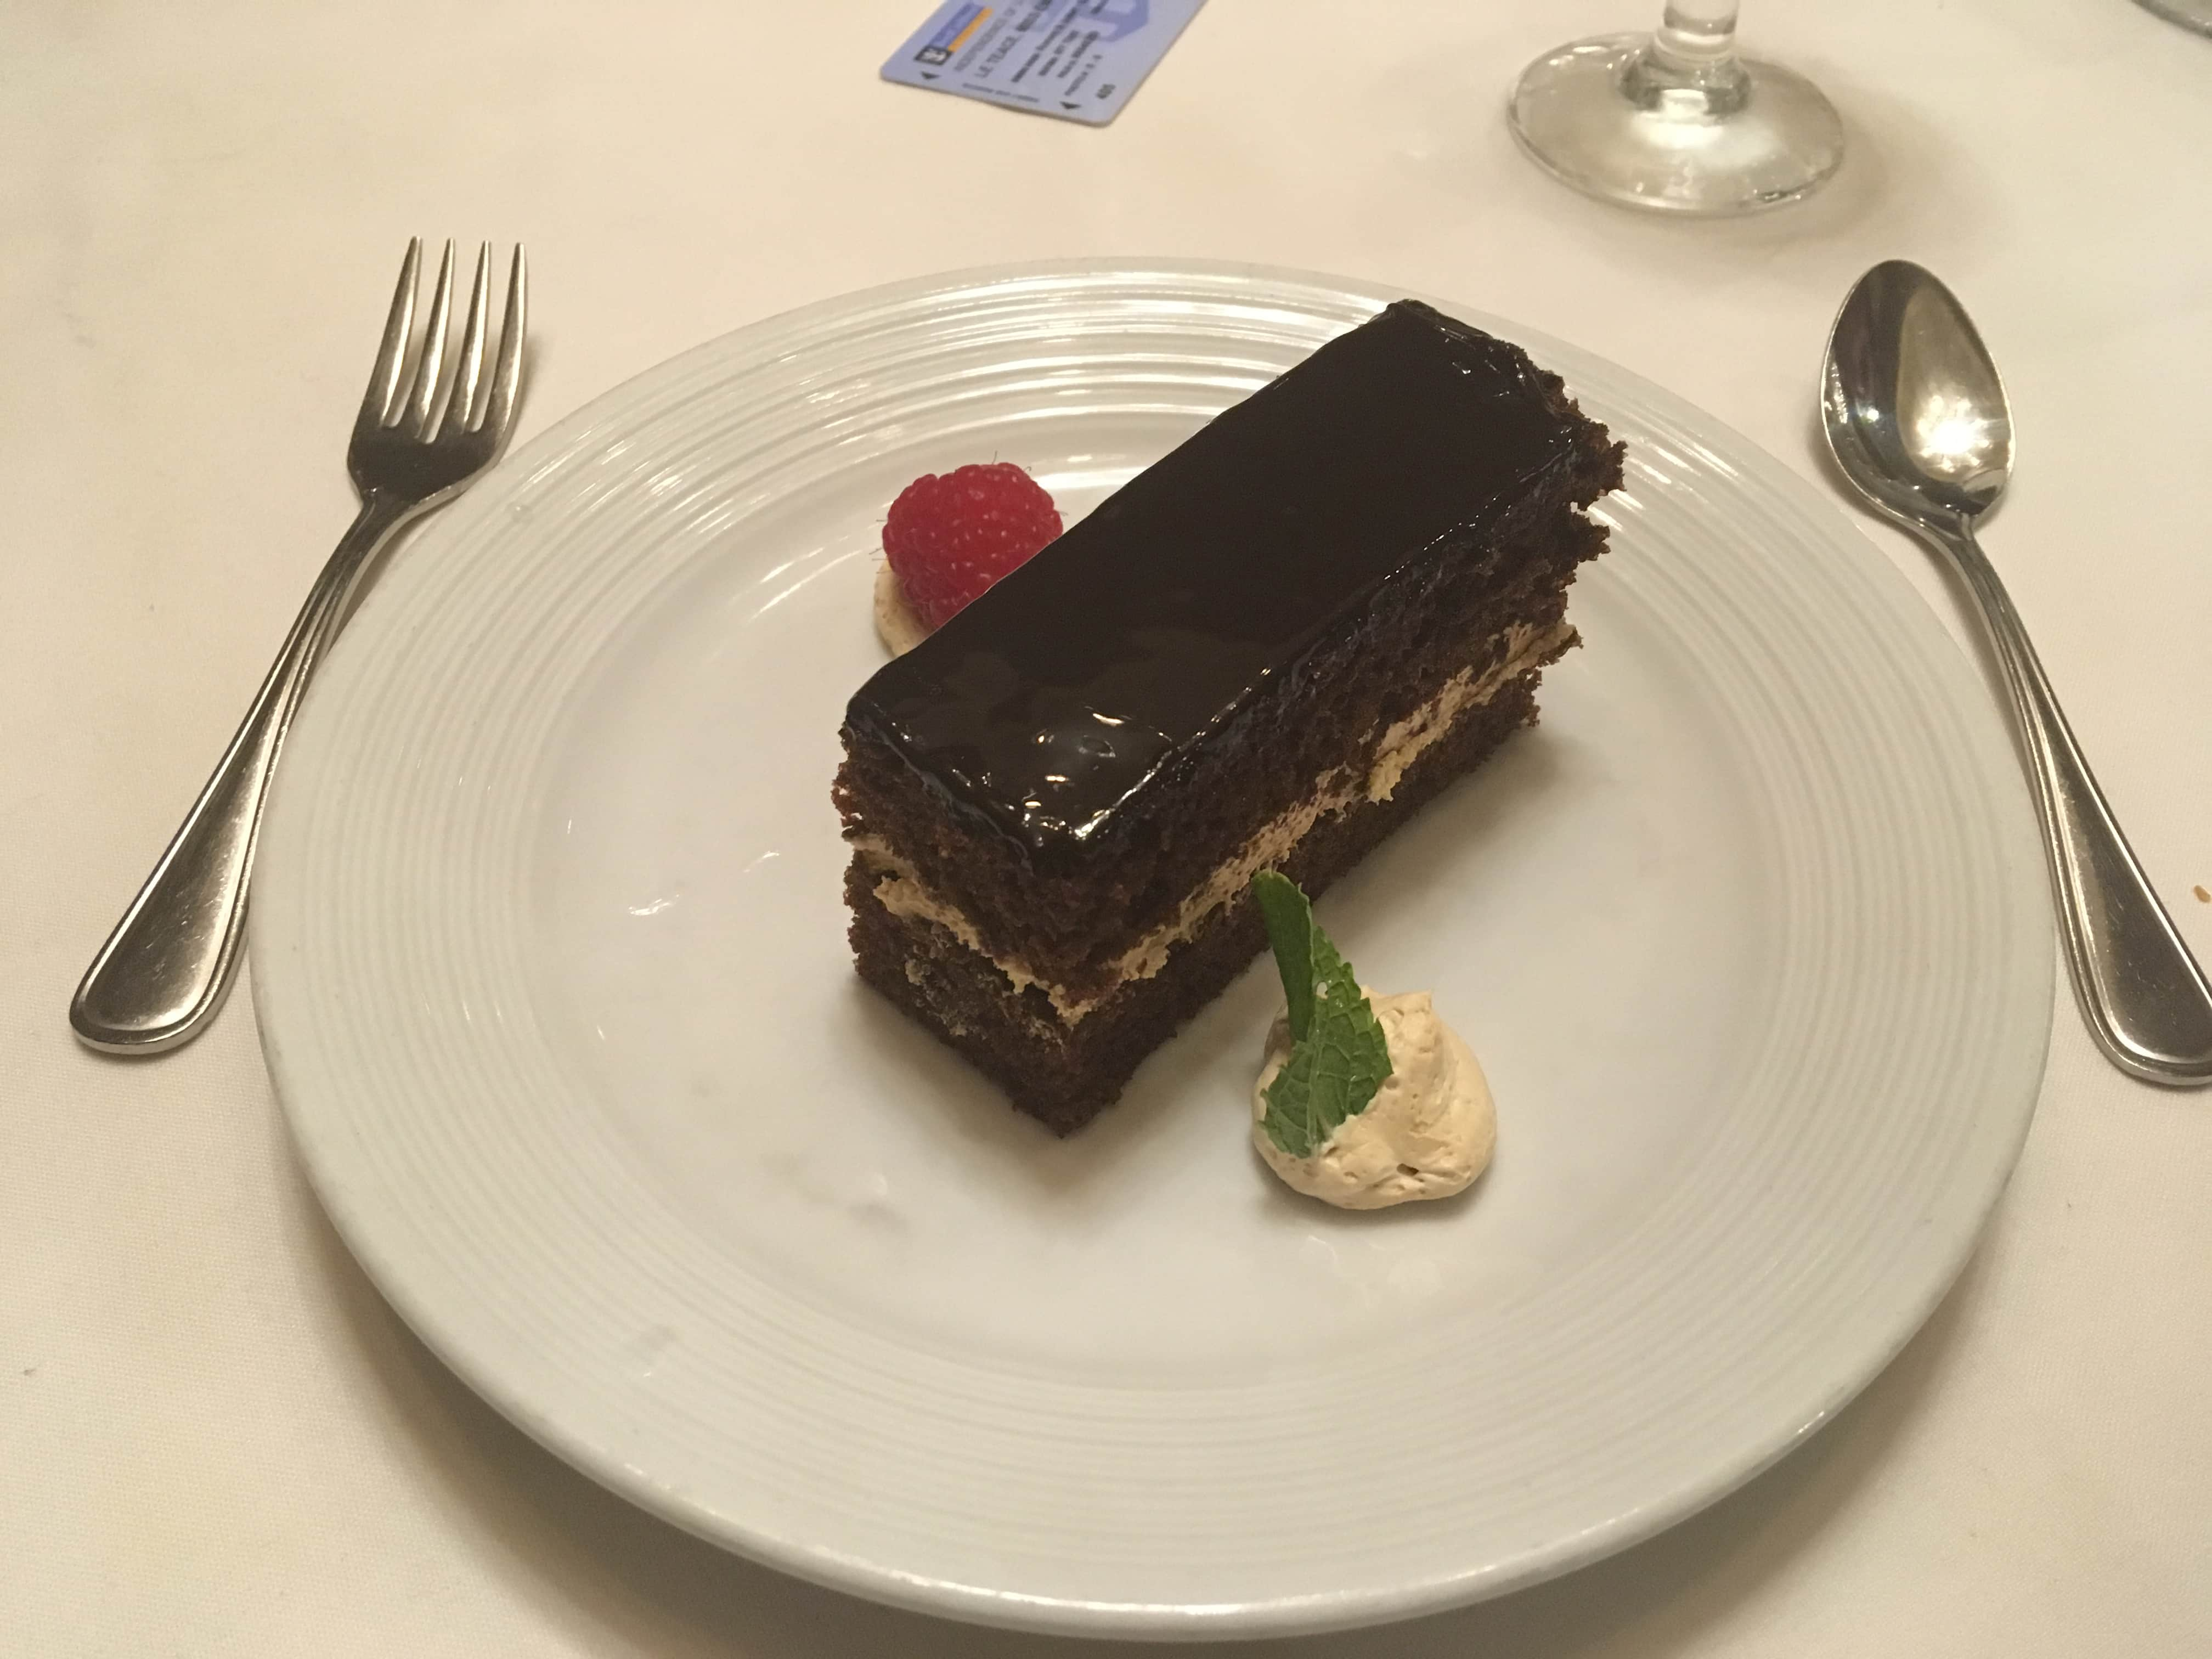 royal caribbean independence of the seas chocolate cake desert main dining room dinner